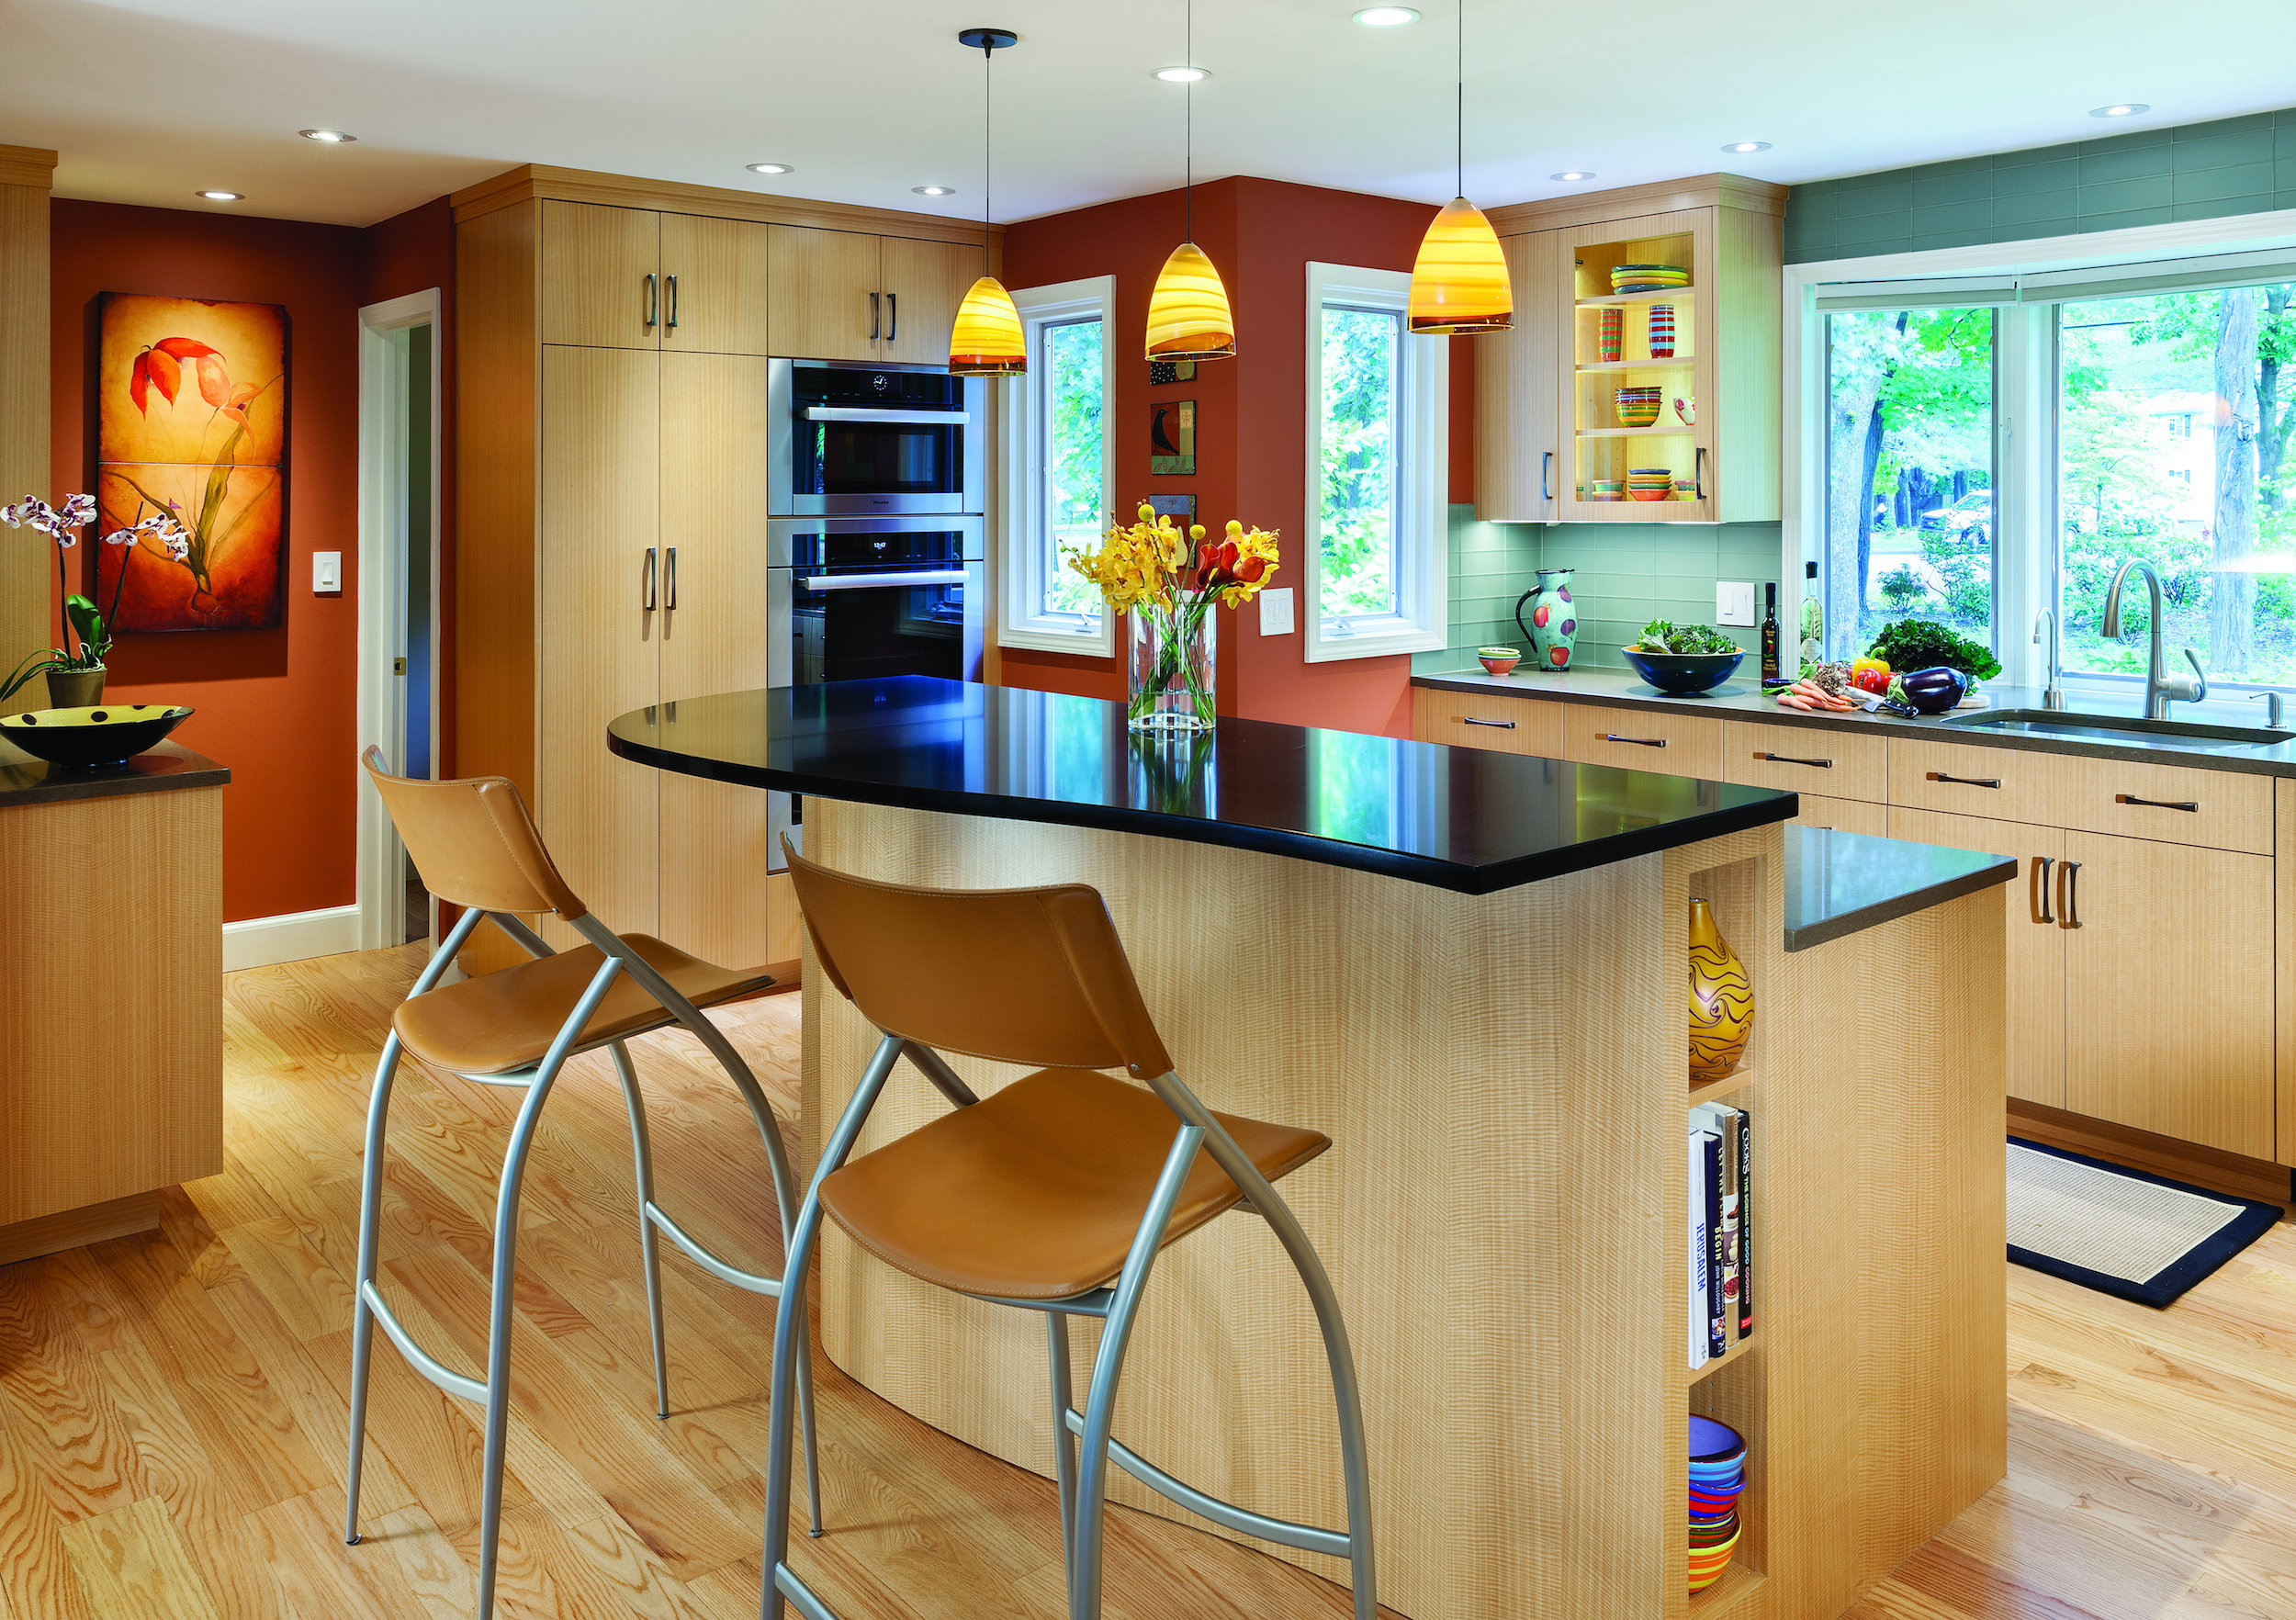 KitchenVisions-Modern-Kitchen-Wayland-BD06150102.jpg